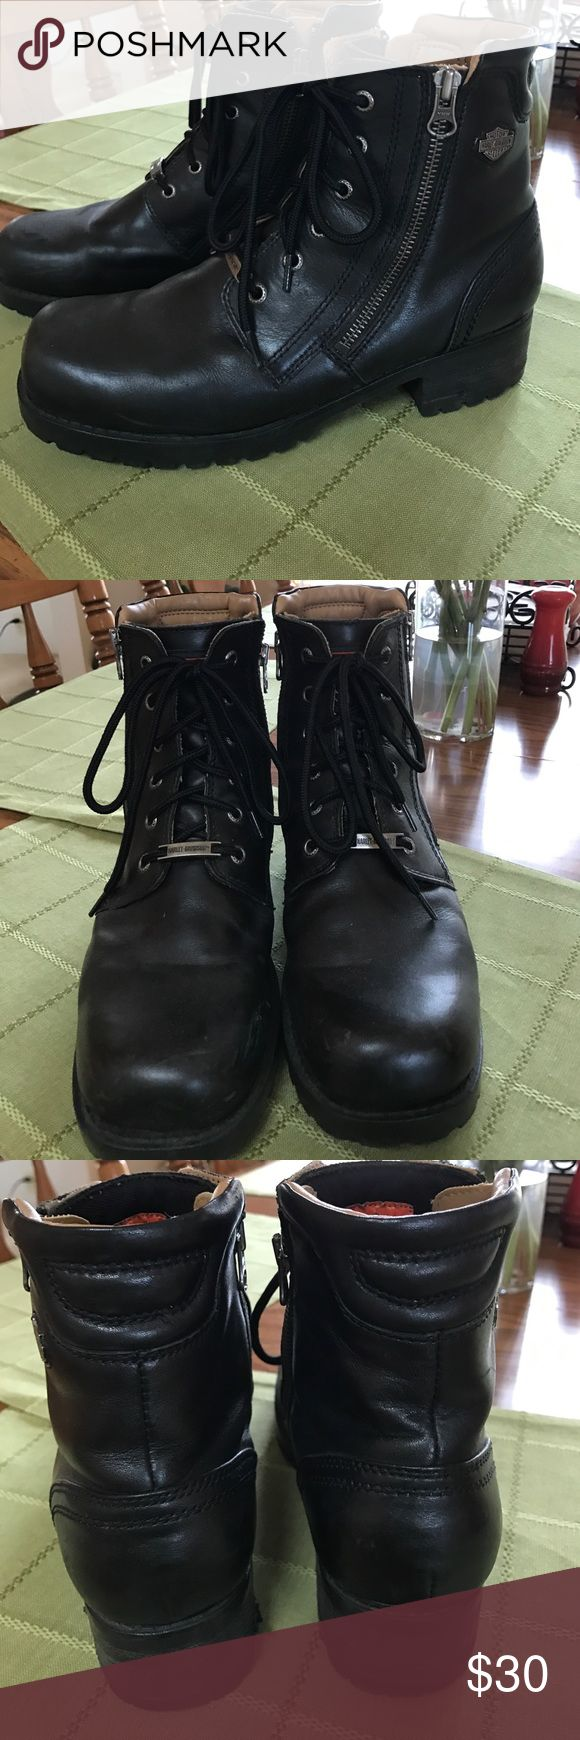 Women's super cute Harley Davidson riding boots Size 9 1/2.  One heel has a scrape on it as seen in pic. A couple very minor scrapes that will buff right out. Great boots for a long summer ride!! Side zippers. Lots of life left in these boots! Harley-Davidson Shoes